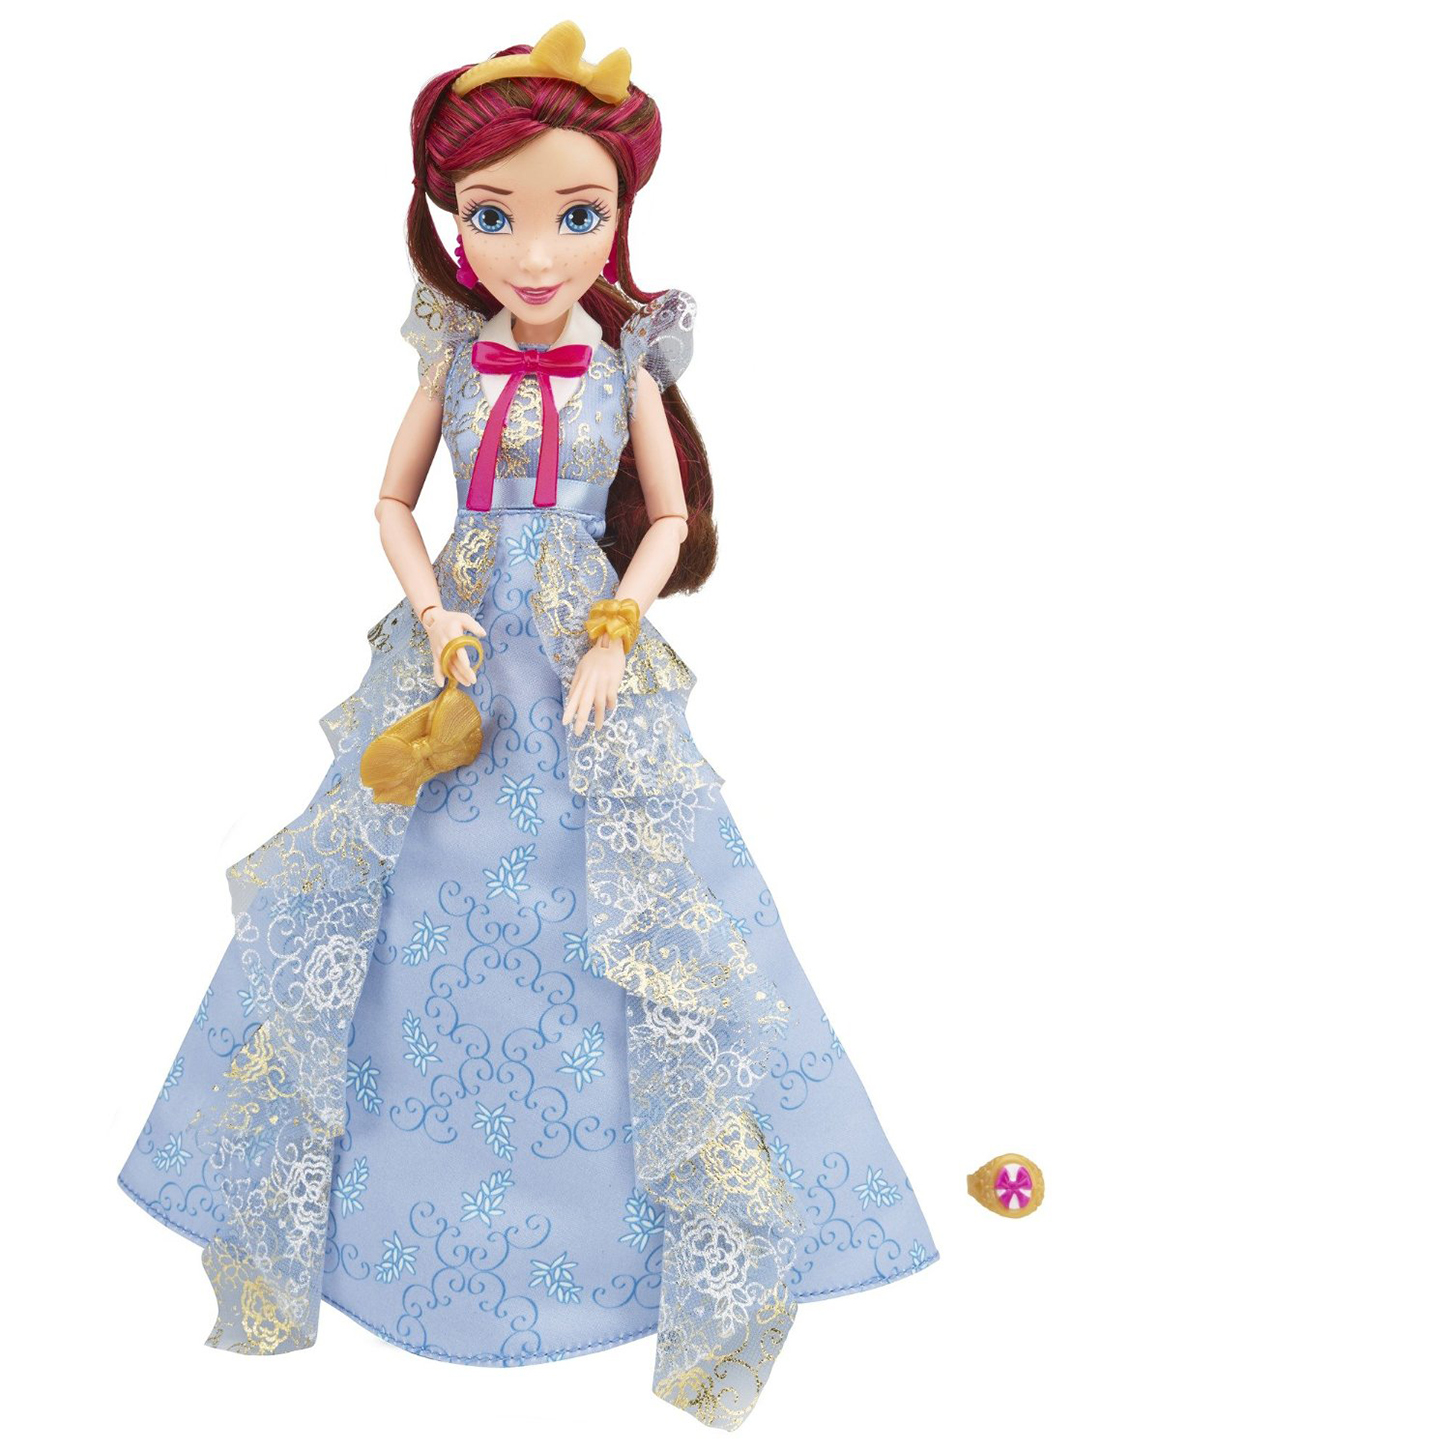 Disney Descendants Coronation Jane Auradon Prep Doll by Disney Descendants